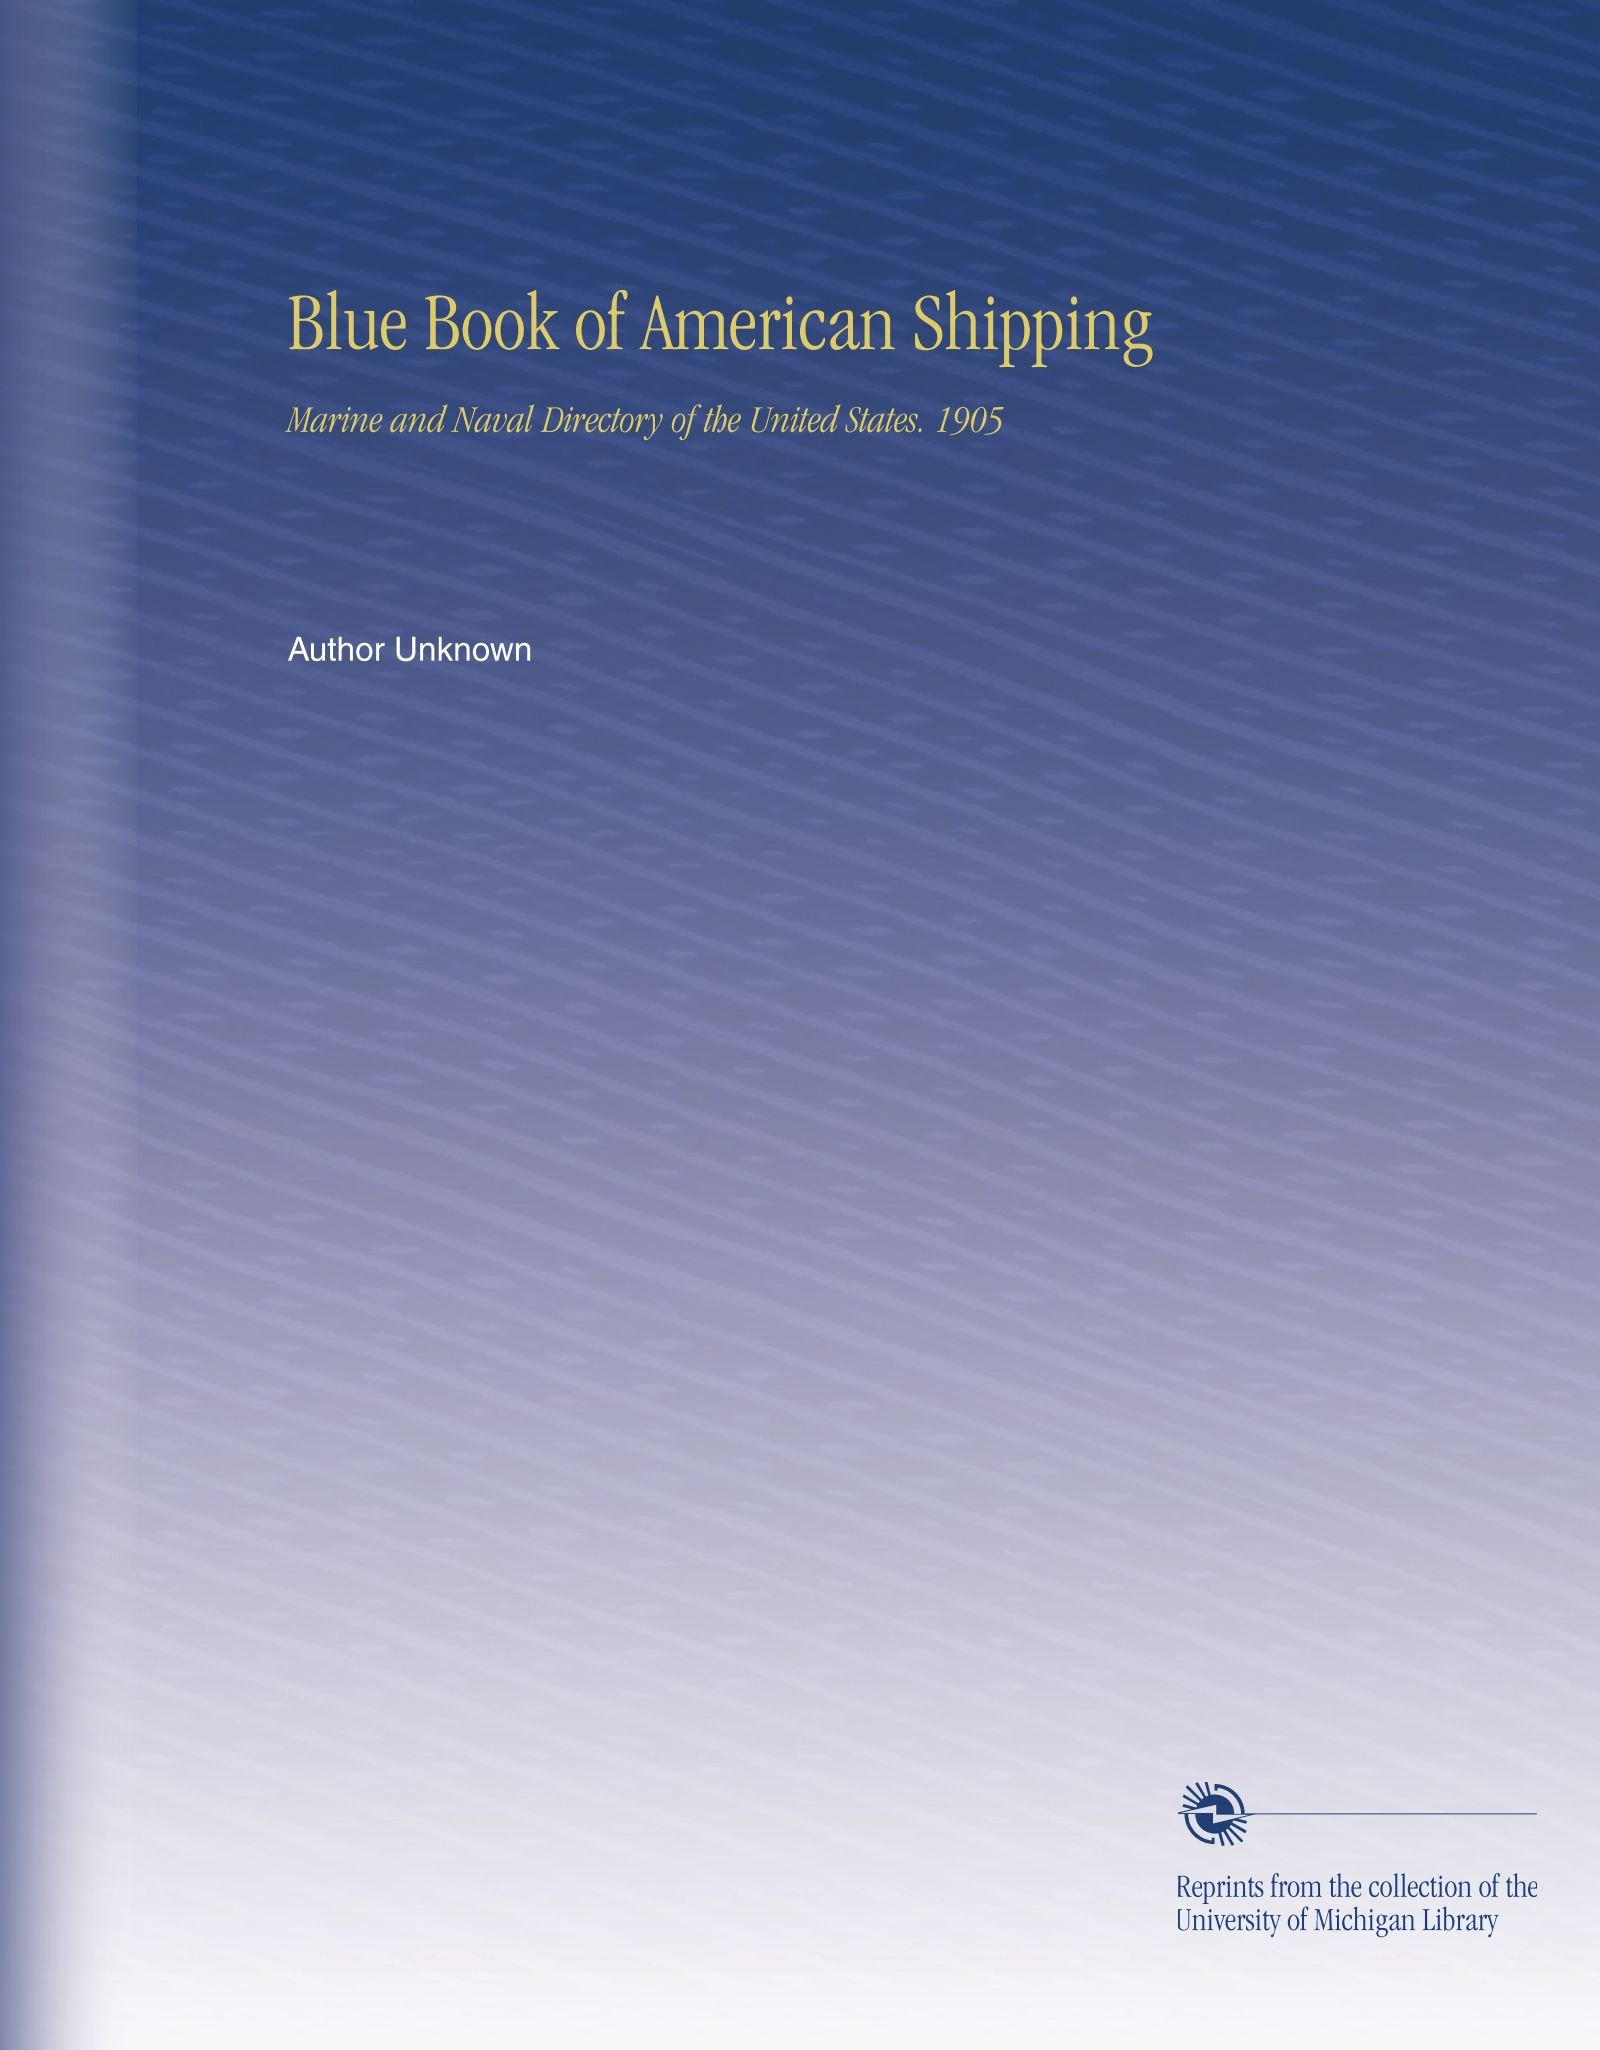 Blue Book of American Shipping: Marine and Naval Directory of the United States. 1905 ebook